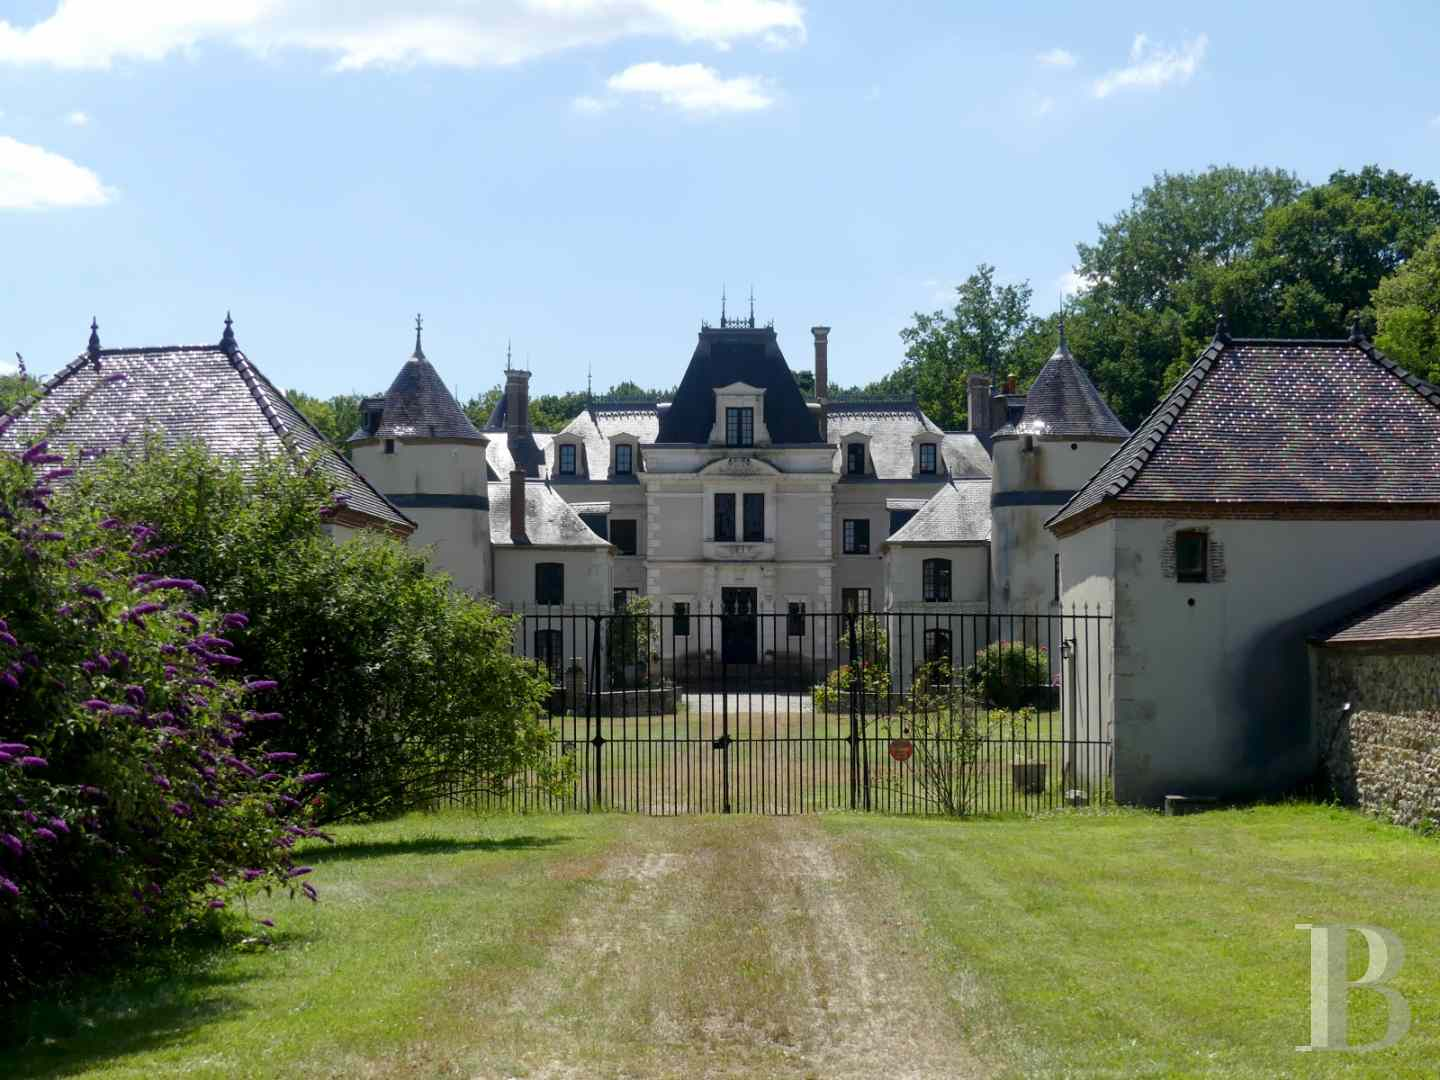 chateaux a vendre bourgogne chateau domaine - 1 zoom